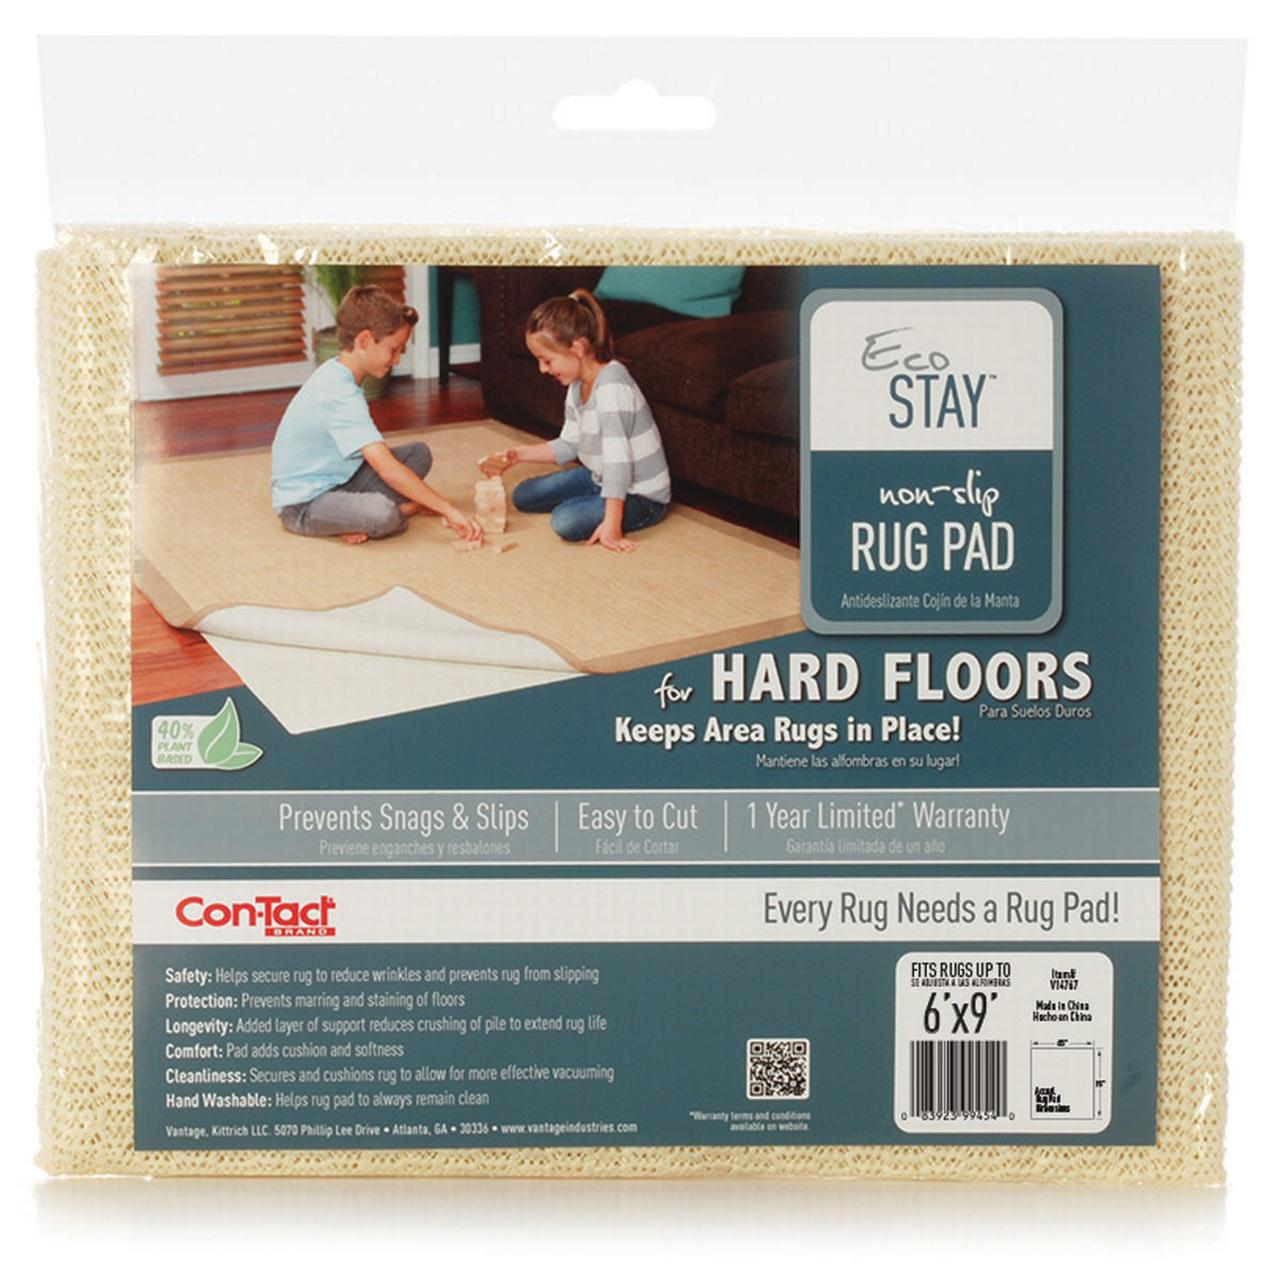 Eco-Stay V14767 Non-Slip Rug Pad, 9 ft L x 6 ft W, Polyester Textile by Kittrich Corp (Pliant)